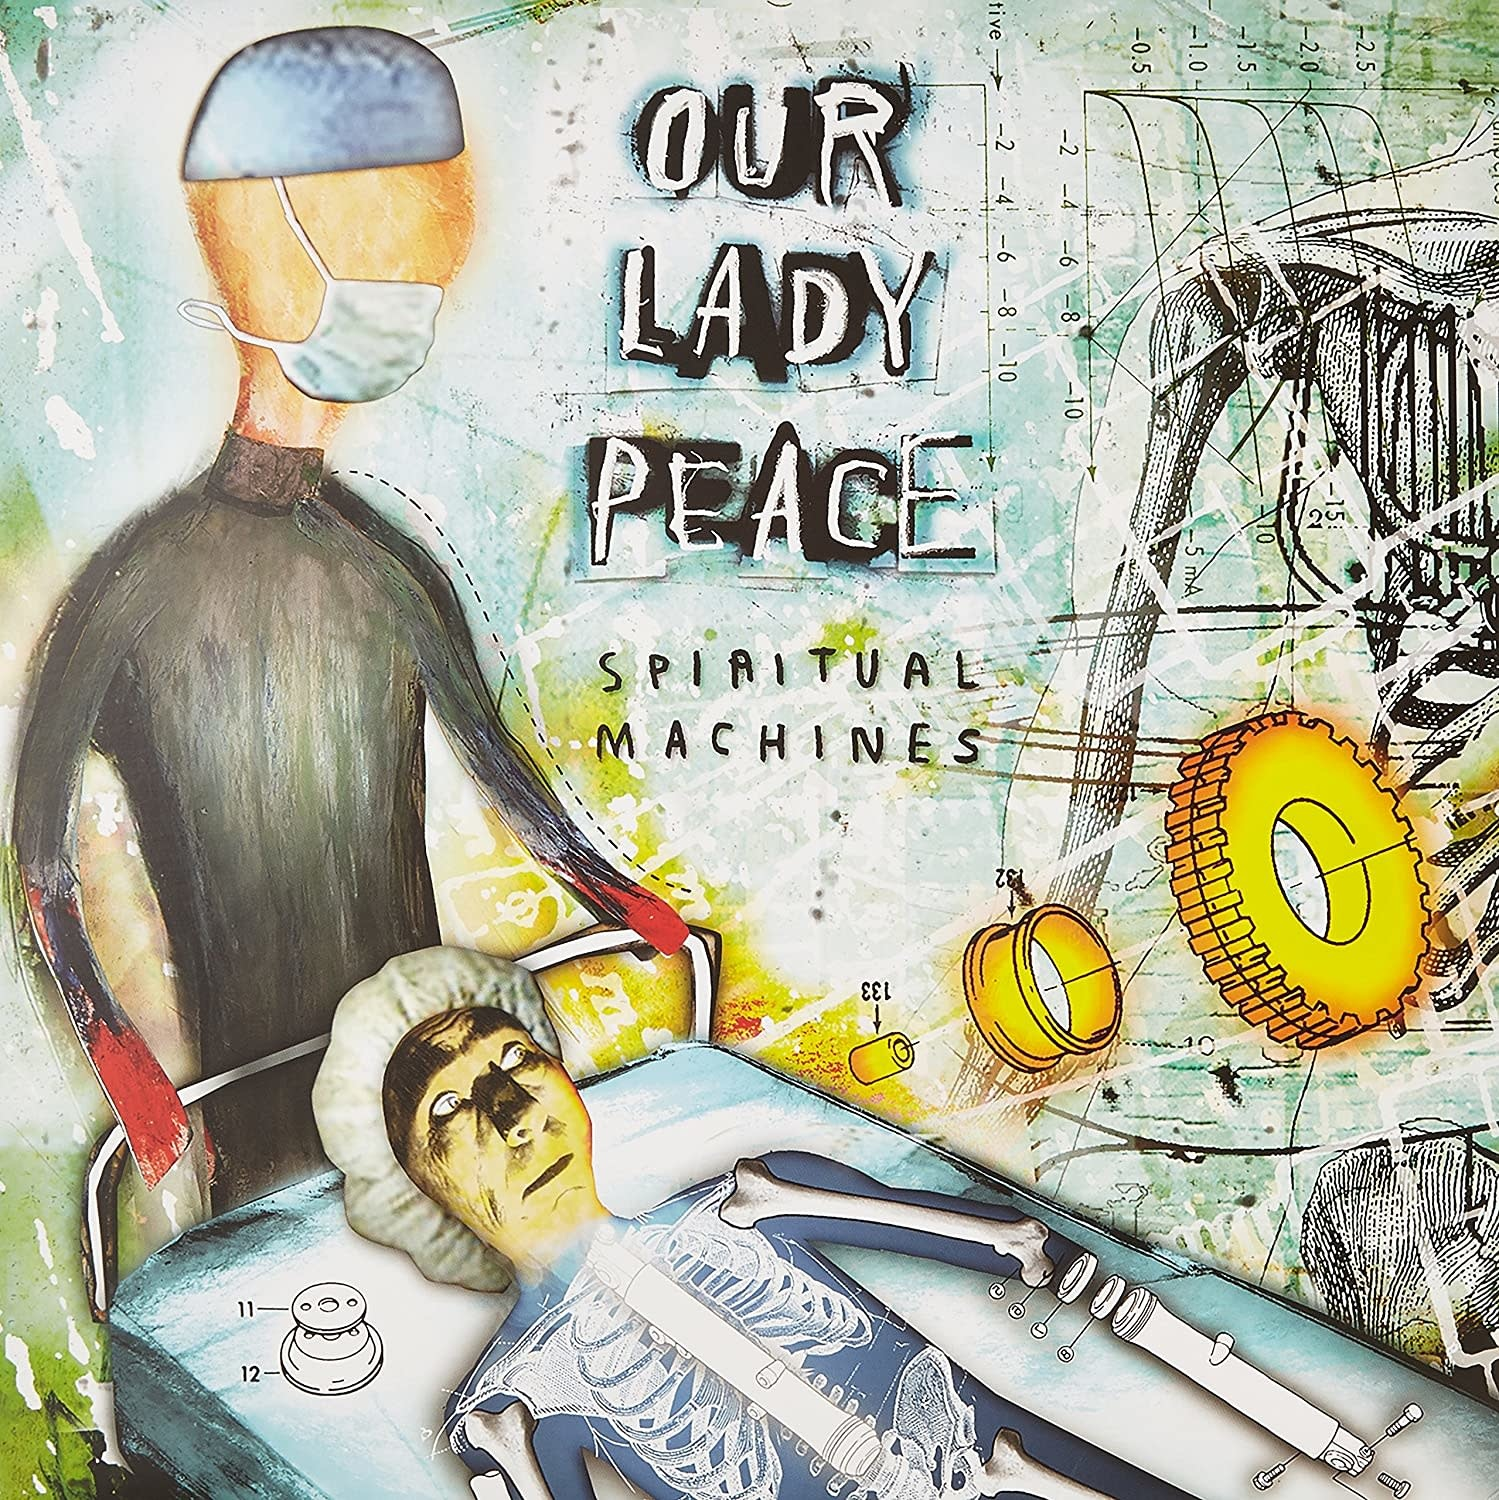 Our Lady Peace – Spiritual Machines